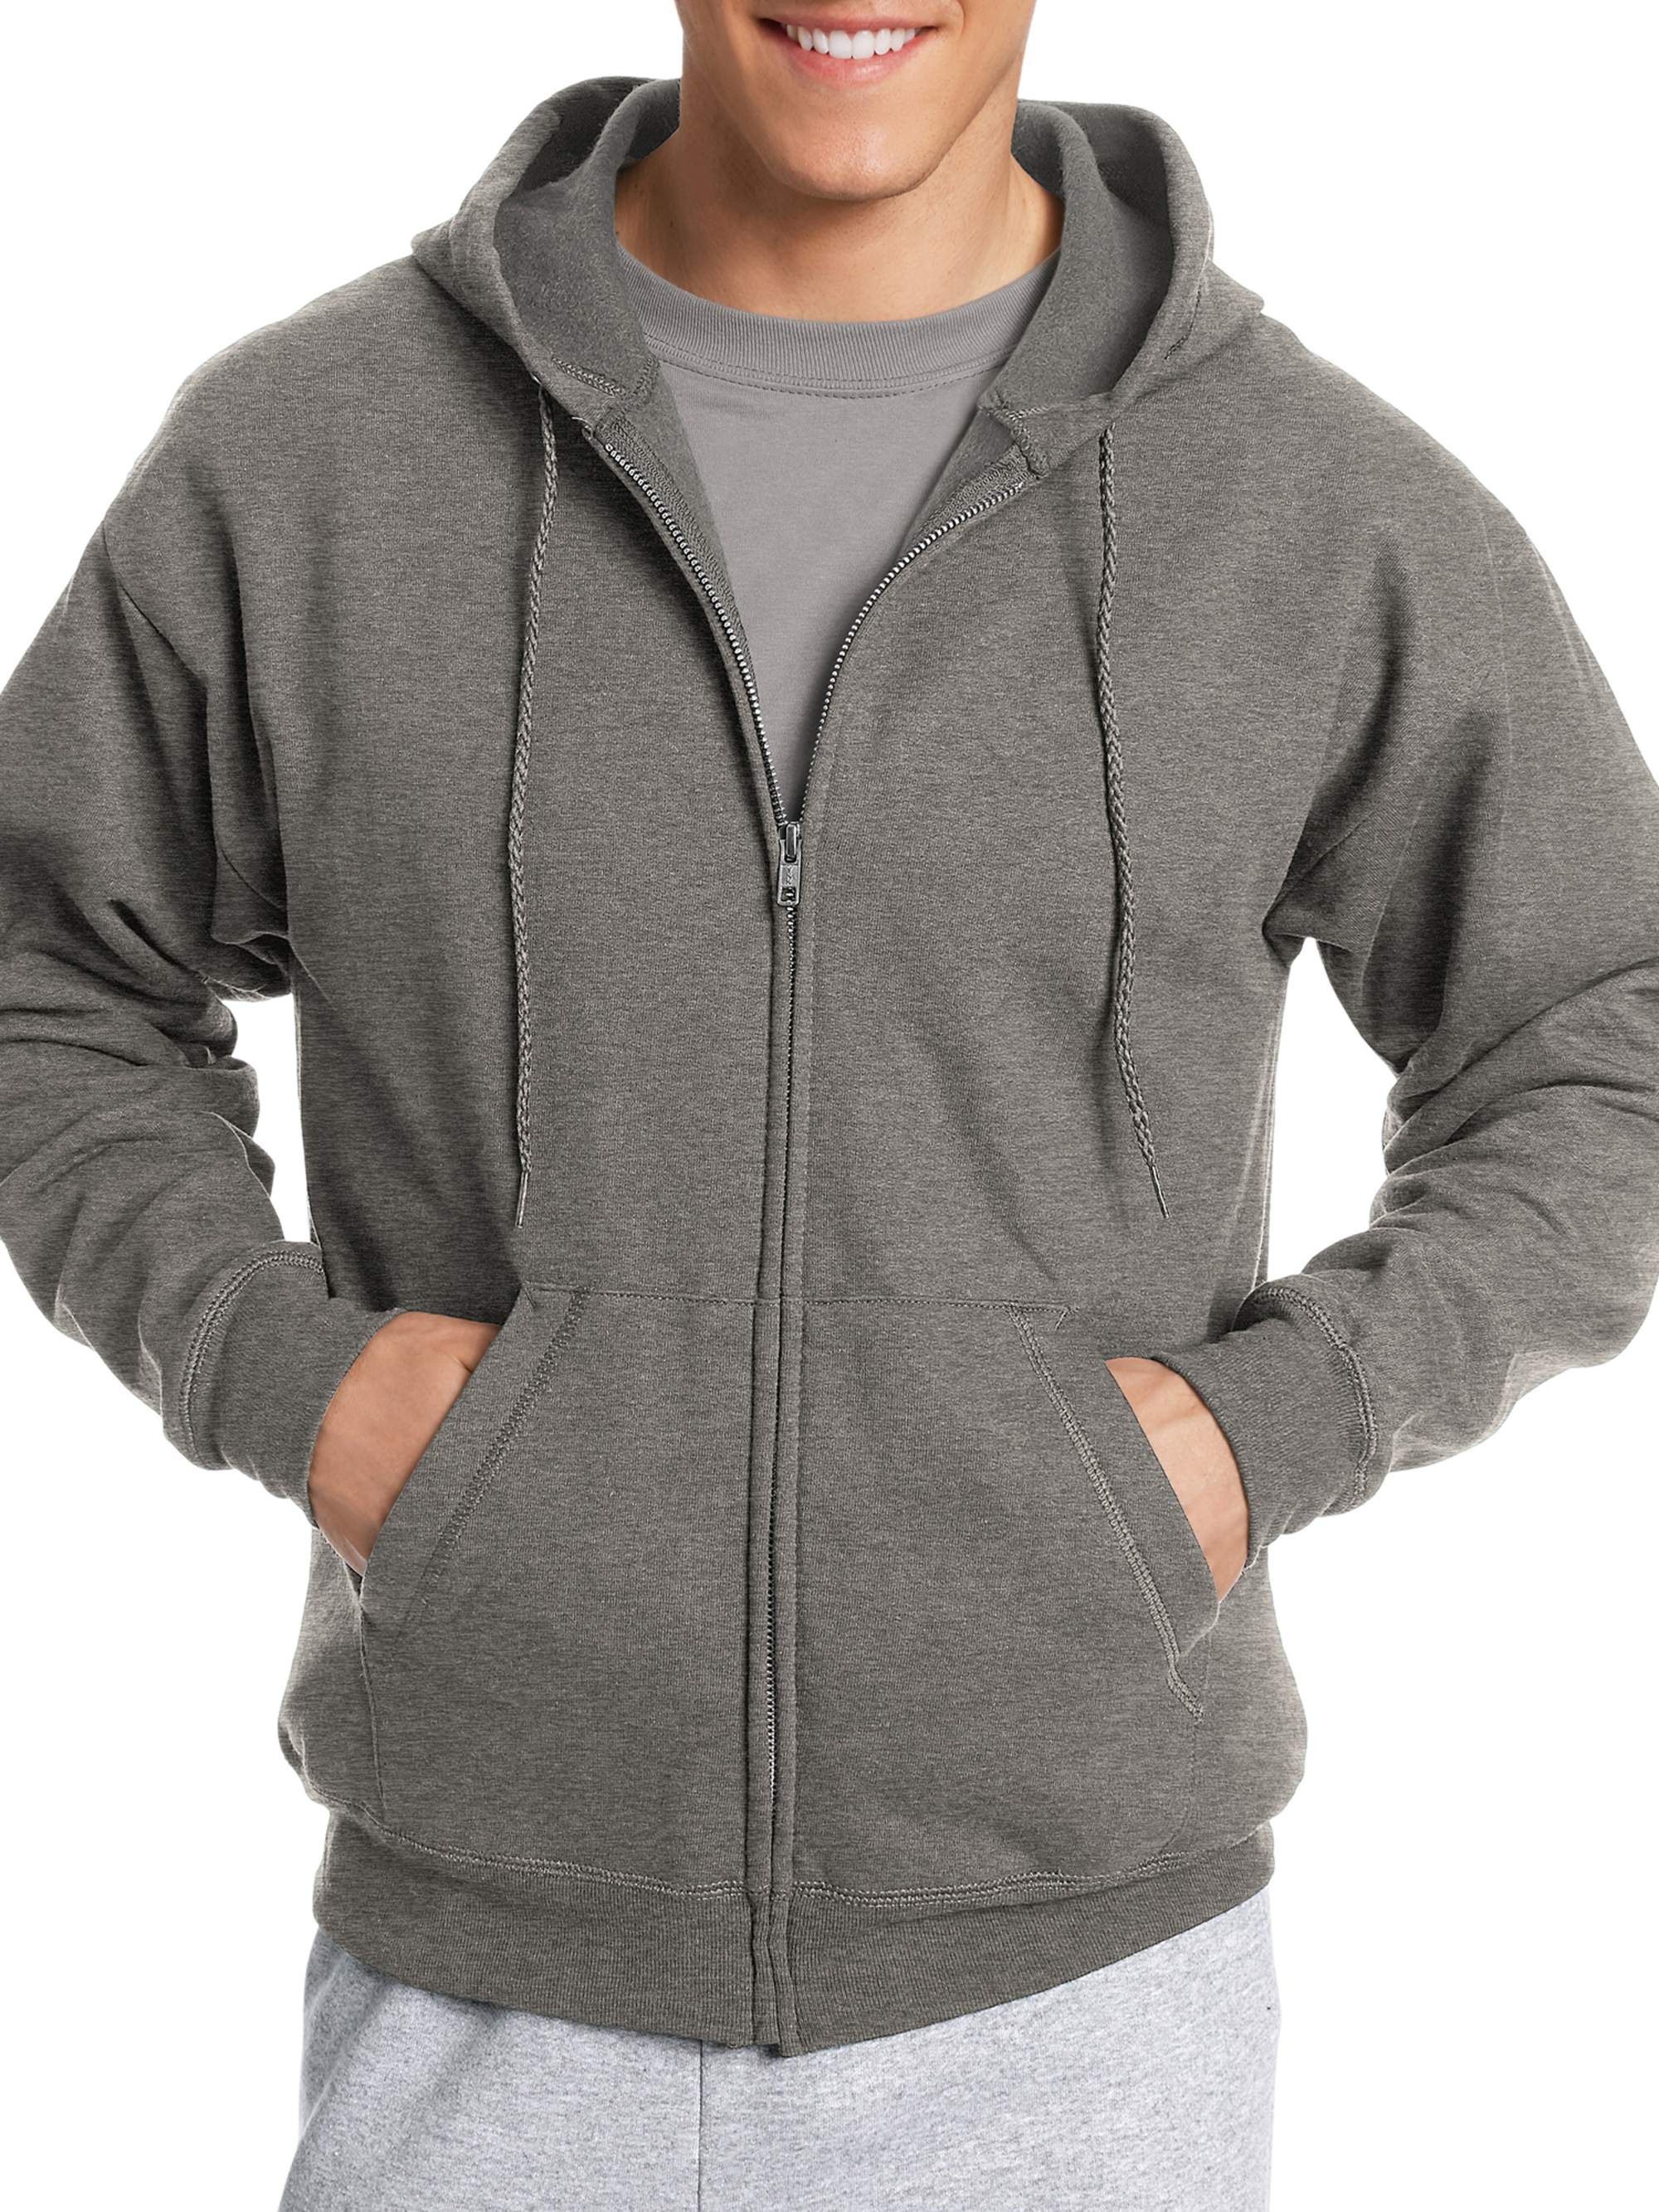 Big Men's EcoSmart Fleece Zip Pullover Hoodie with Front Pocket